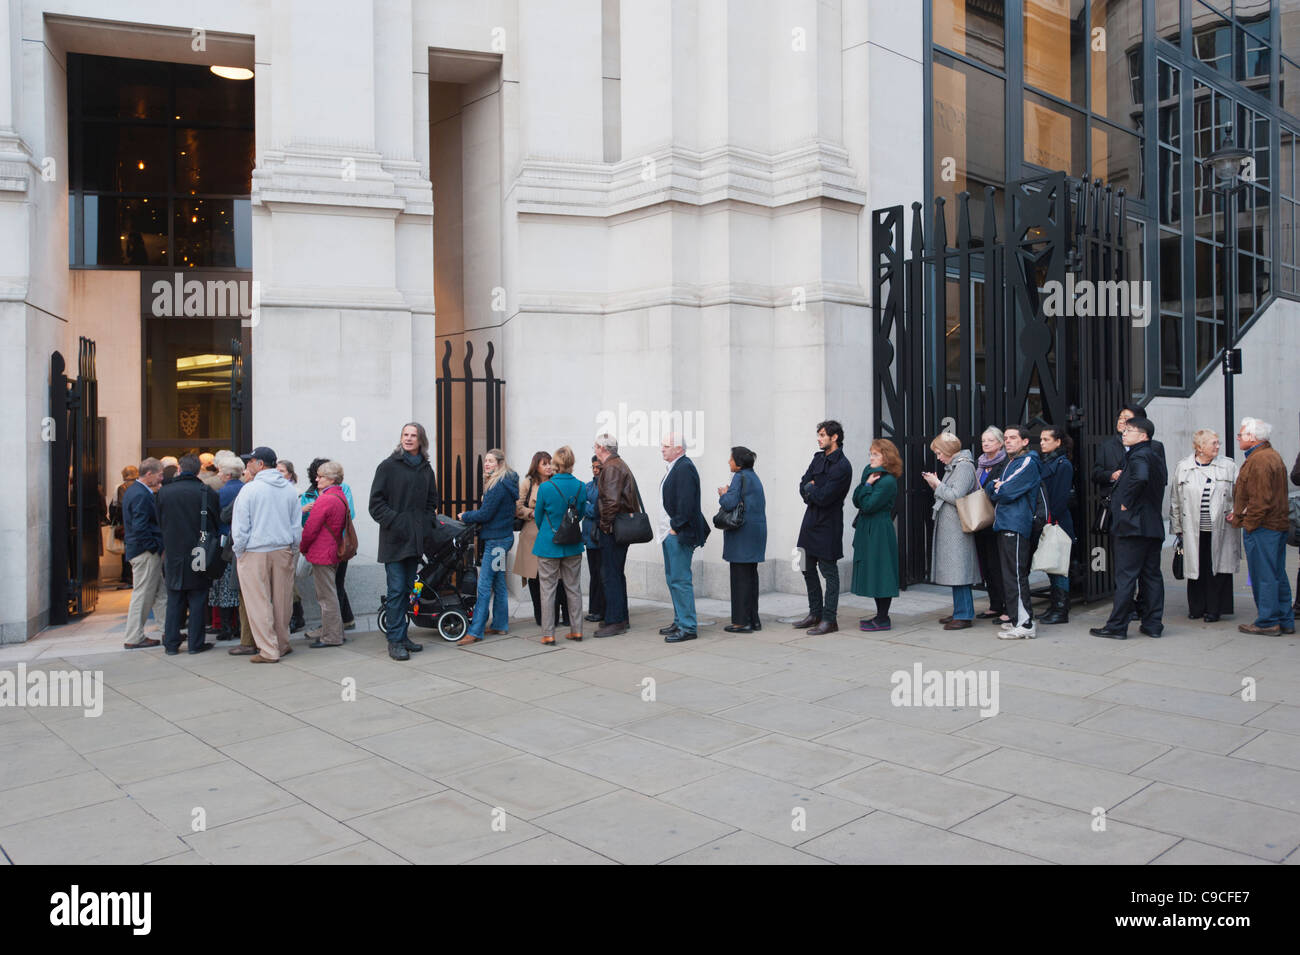 People queuing at the National Gallery in London to see the Leonardo Da Vinci Exhibition, November 2011 - Stock Image